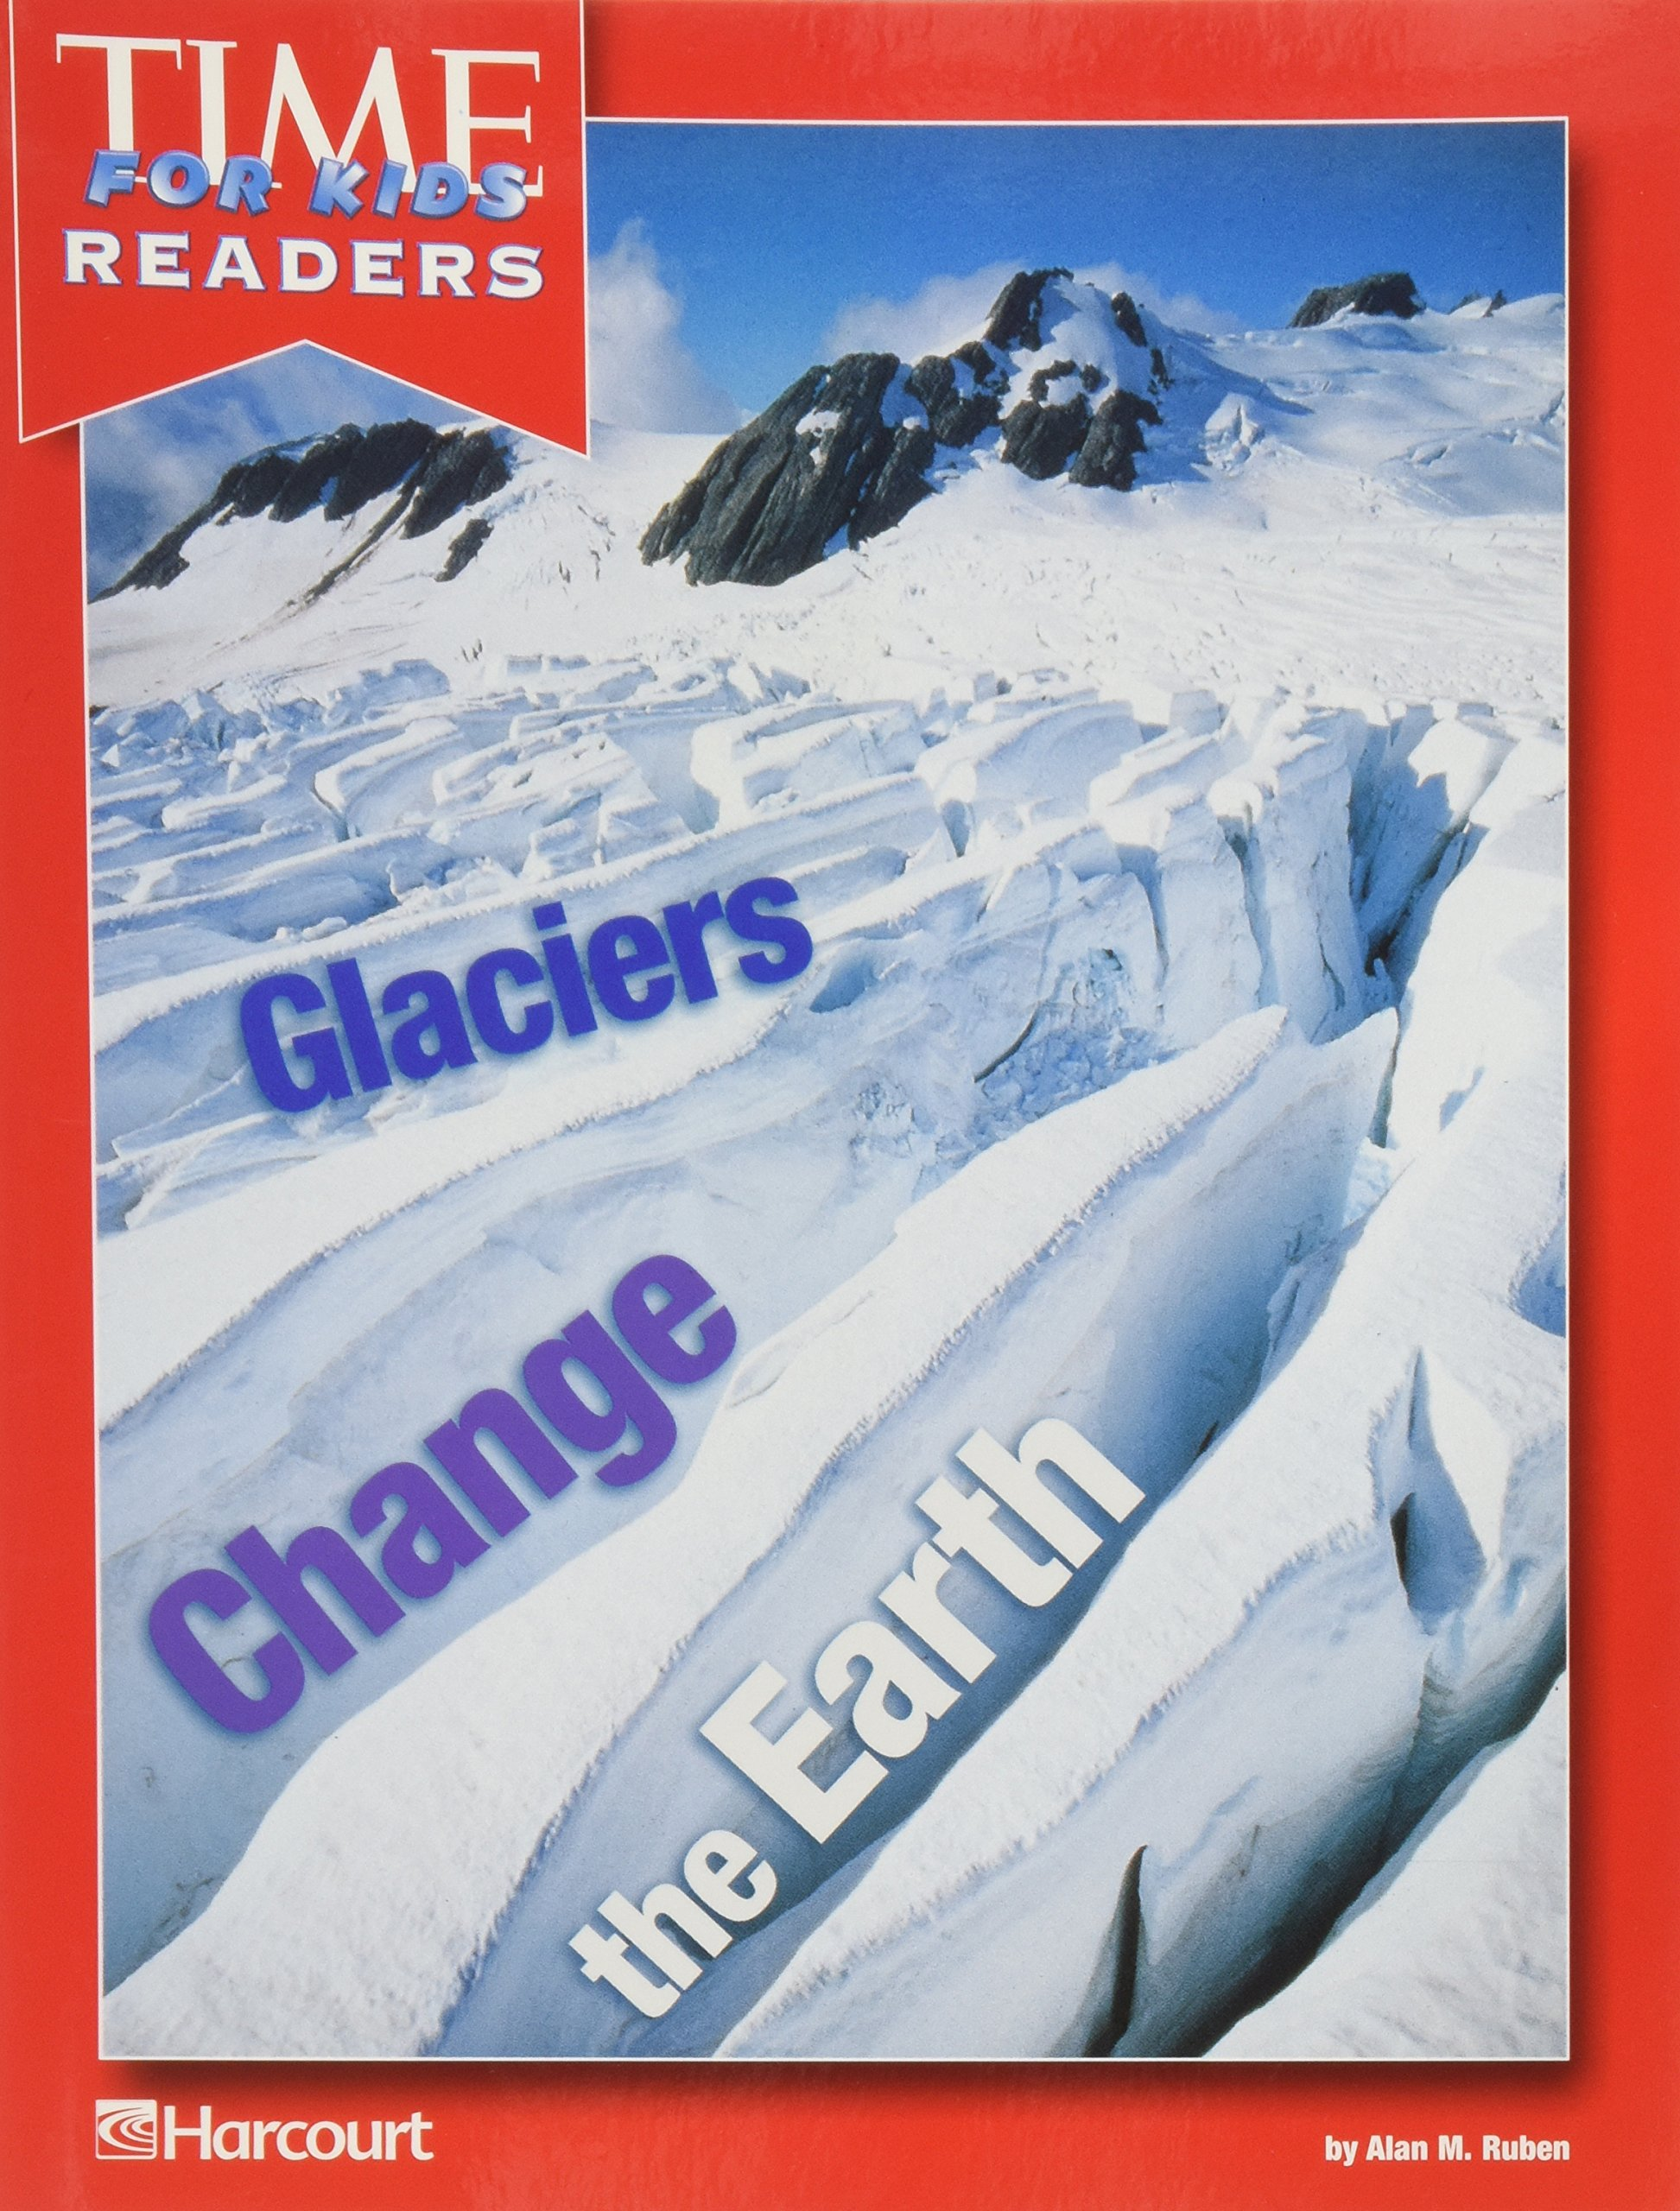 Download Harcourt School Publishers Horizons: 5 Pack Time for Kids Reader Grade 3 Glaciers Change/Earth ebook